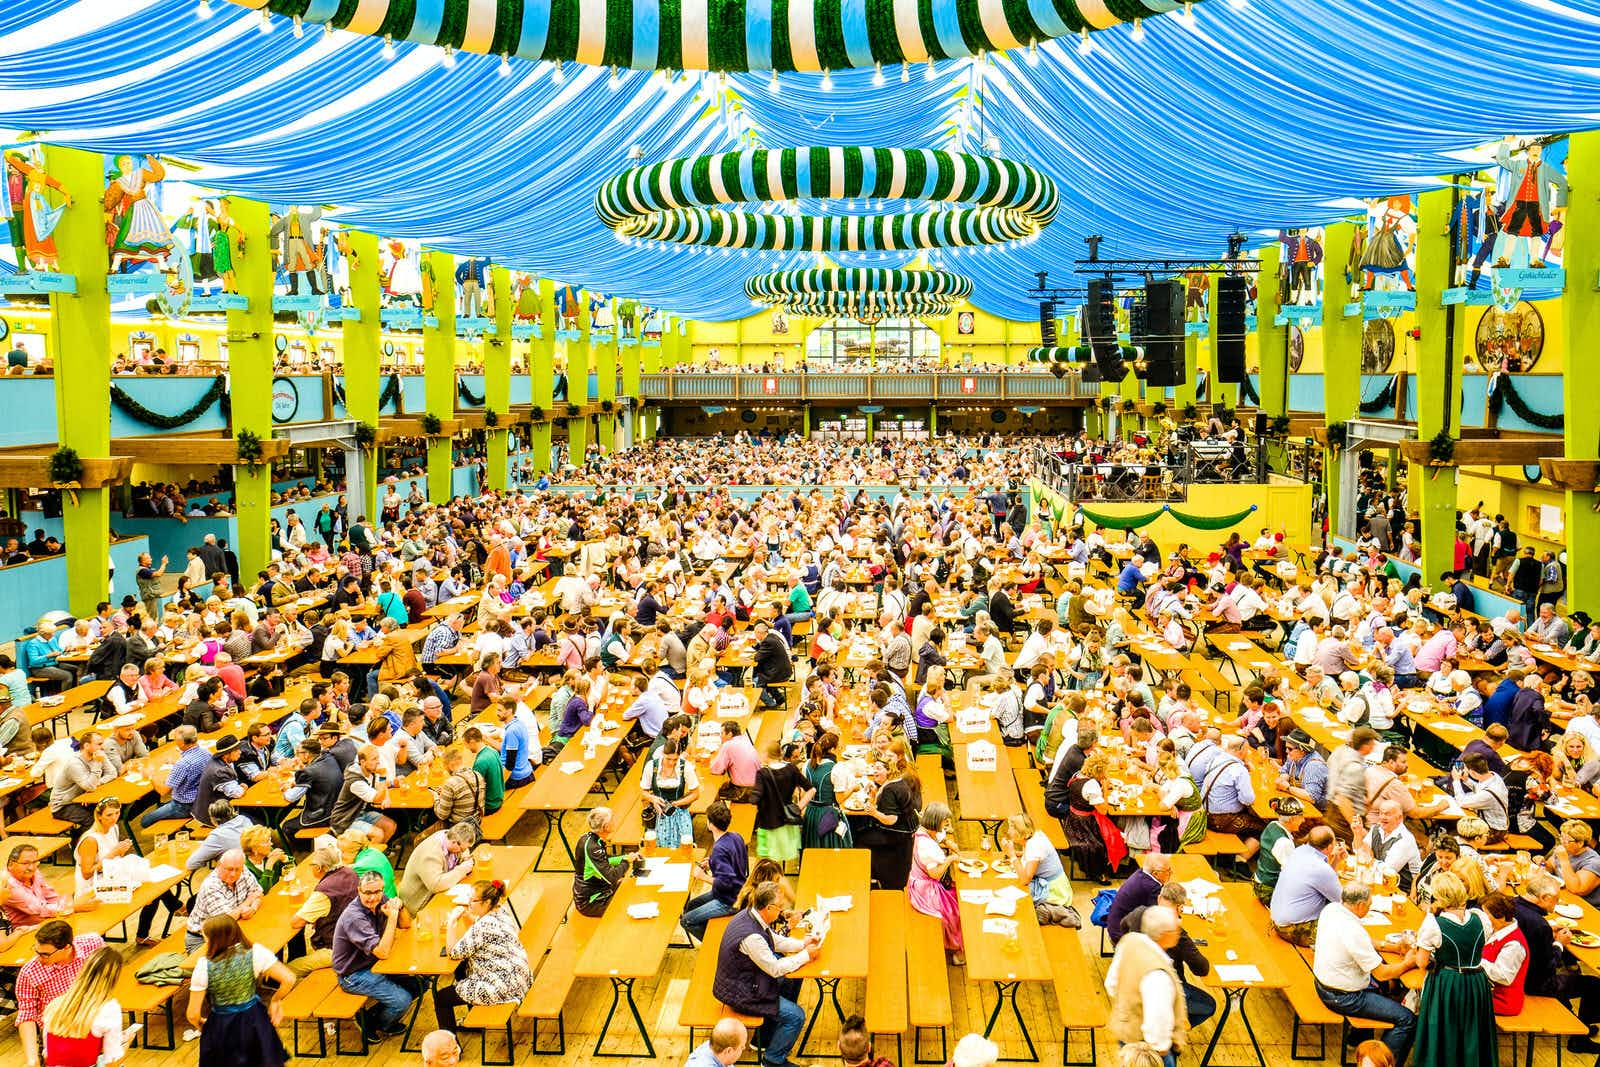 People in the 'Spaten' beer tent at Oktoberfest in Munich. The huge tent, that houses hundreds of tables, has a colourful blue ceiling and striped decorations.